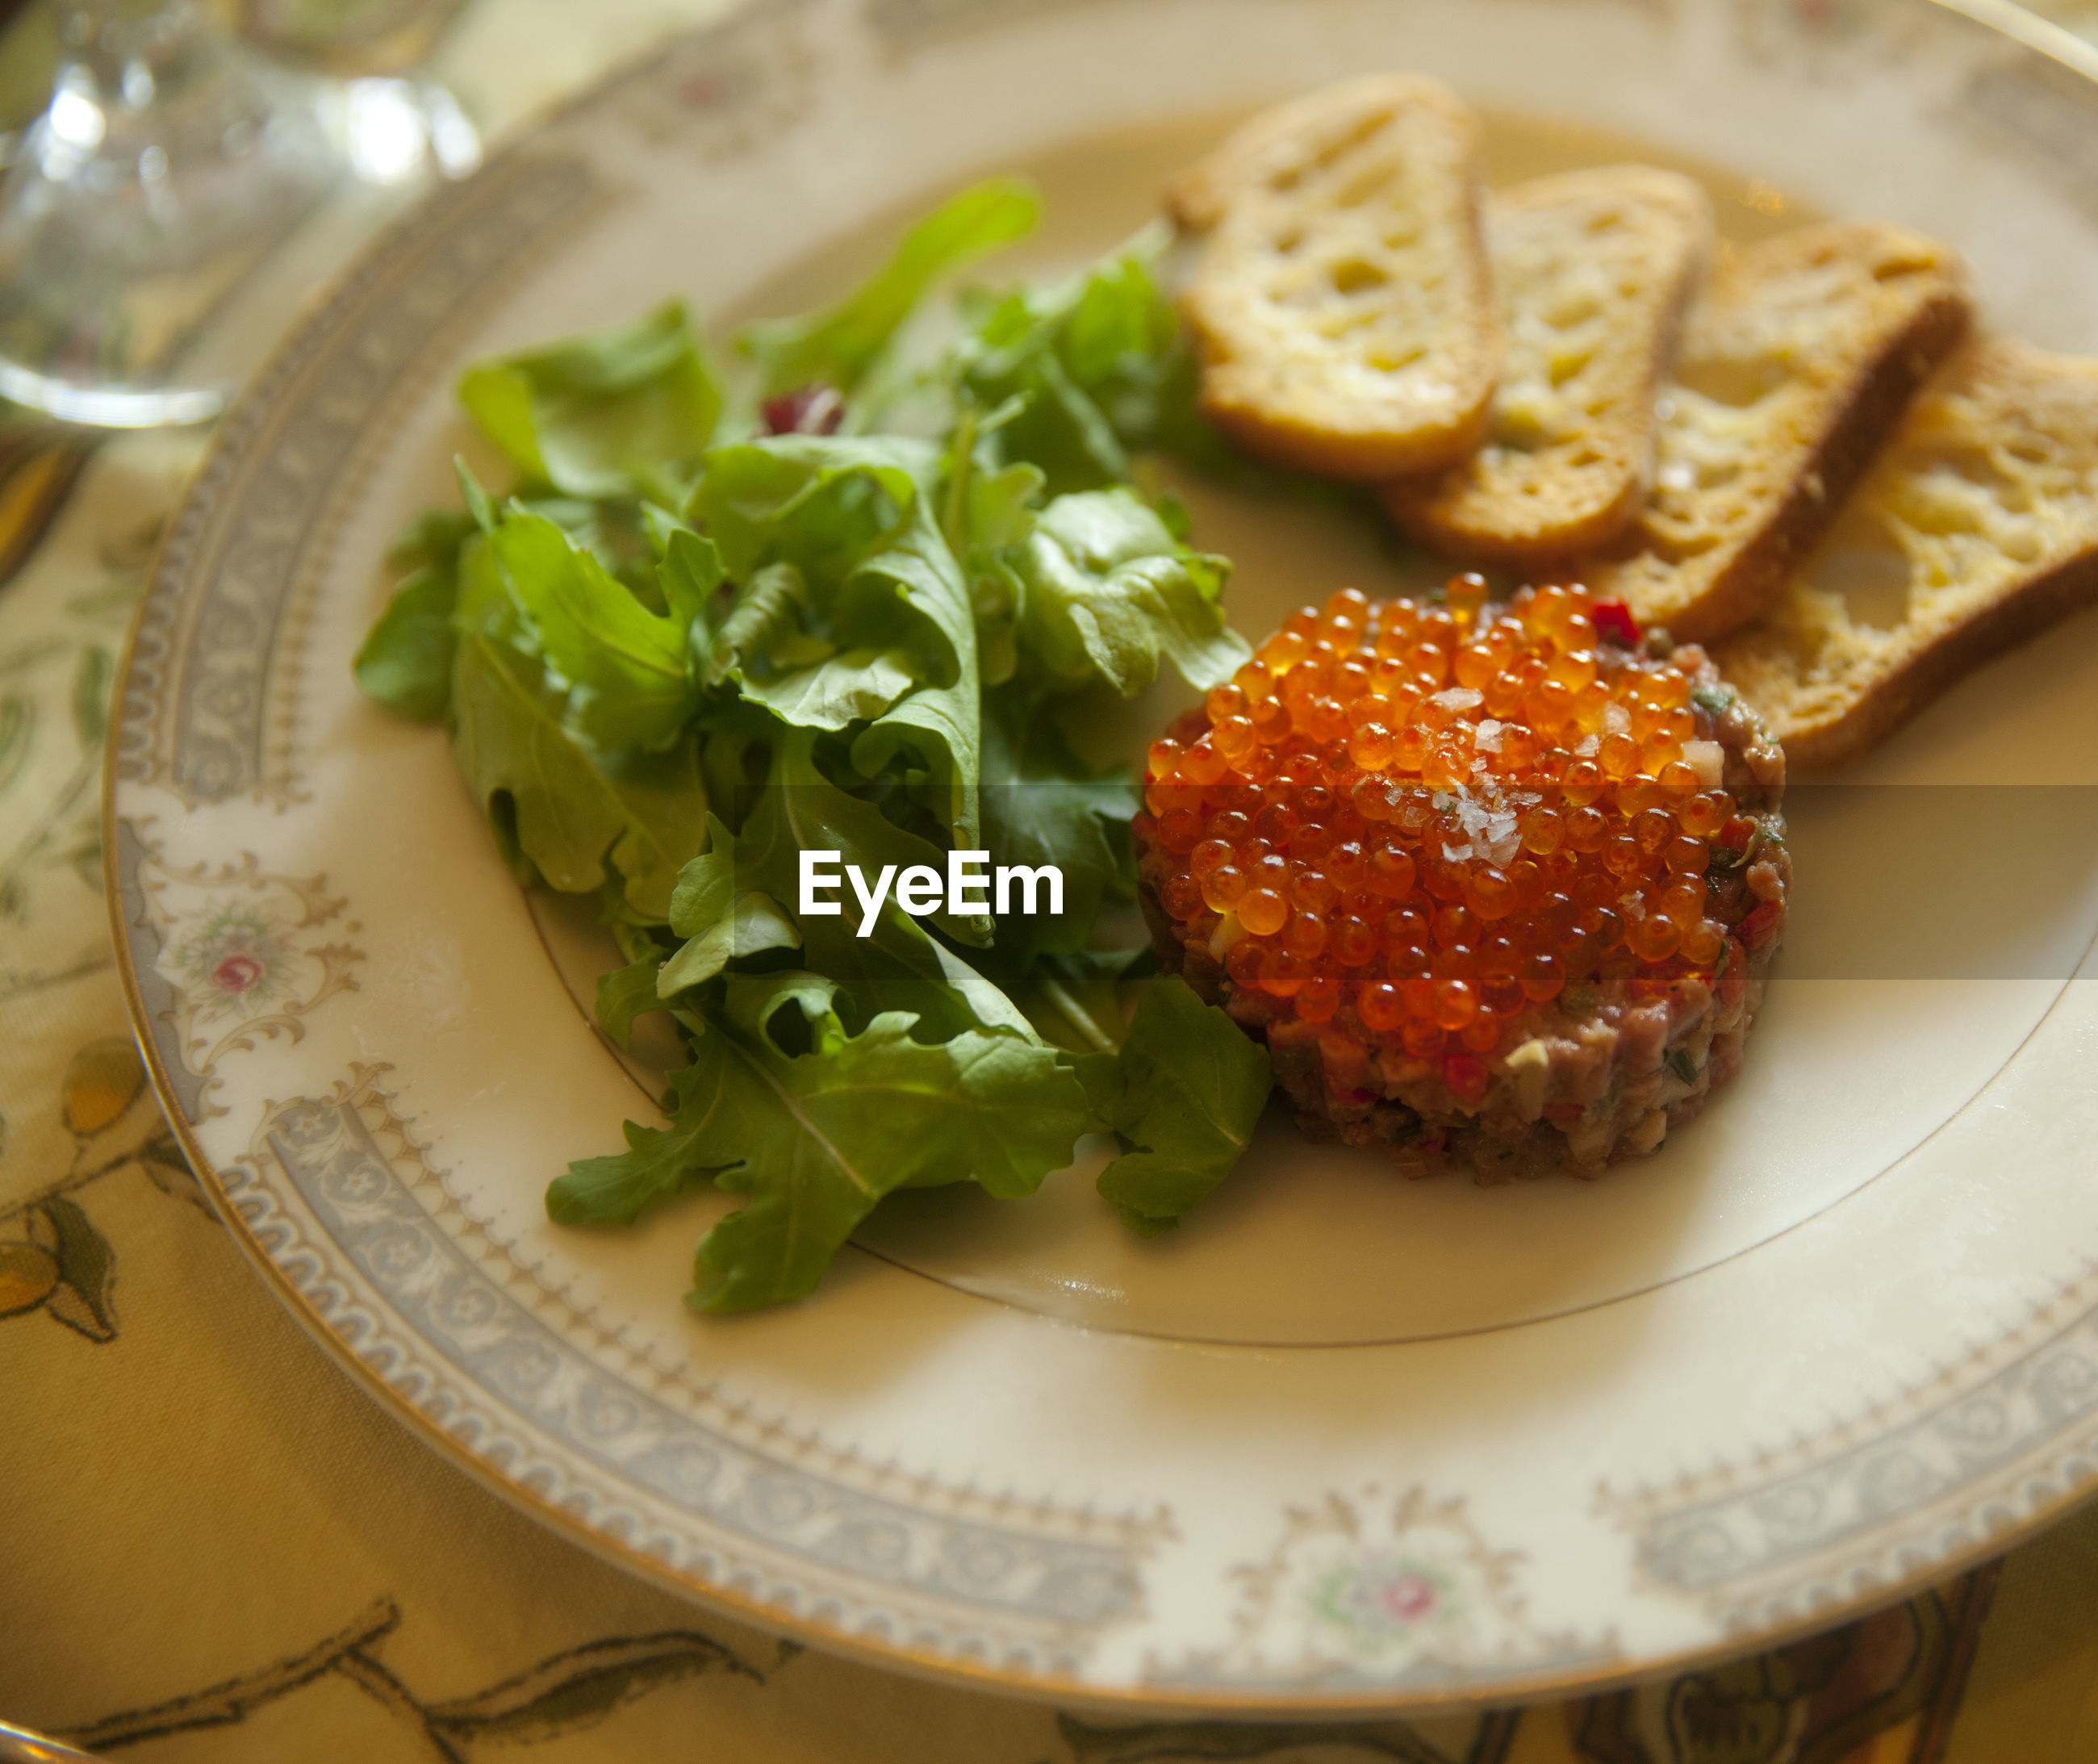 Close-up of steak tartare with rusk and arugula in plate